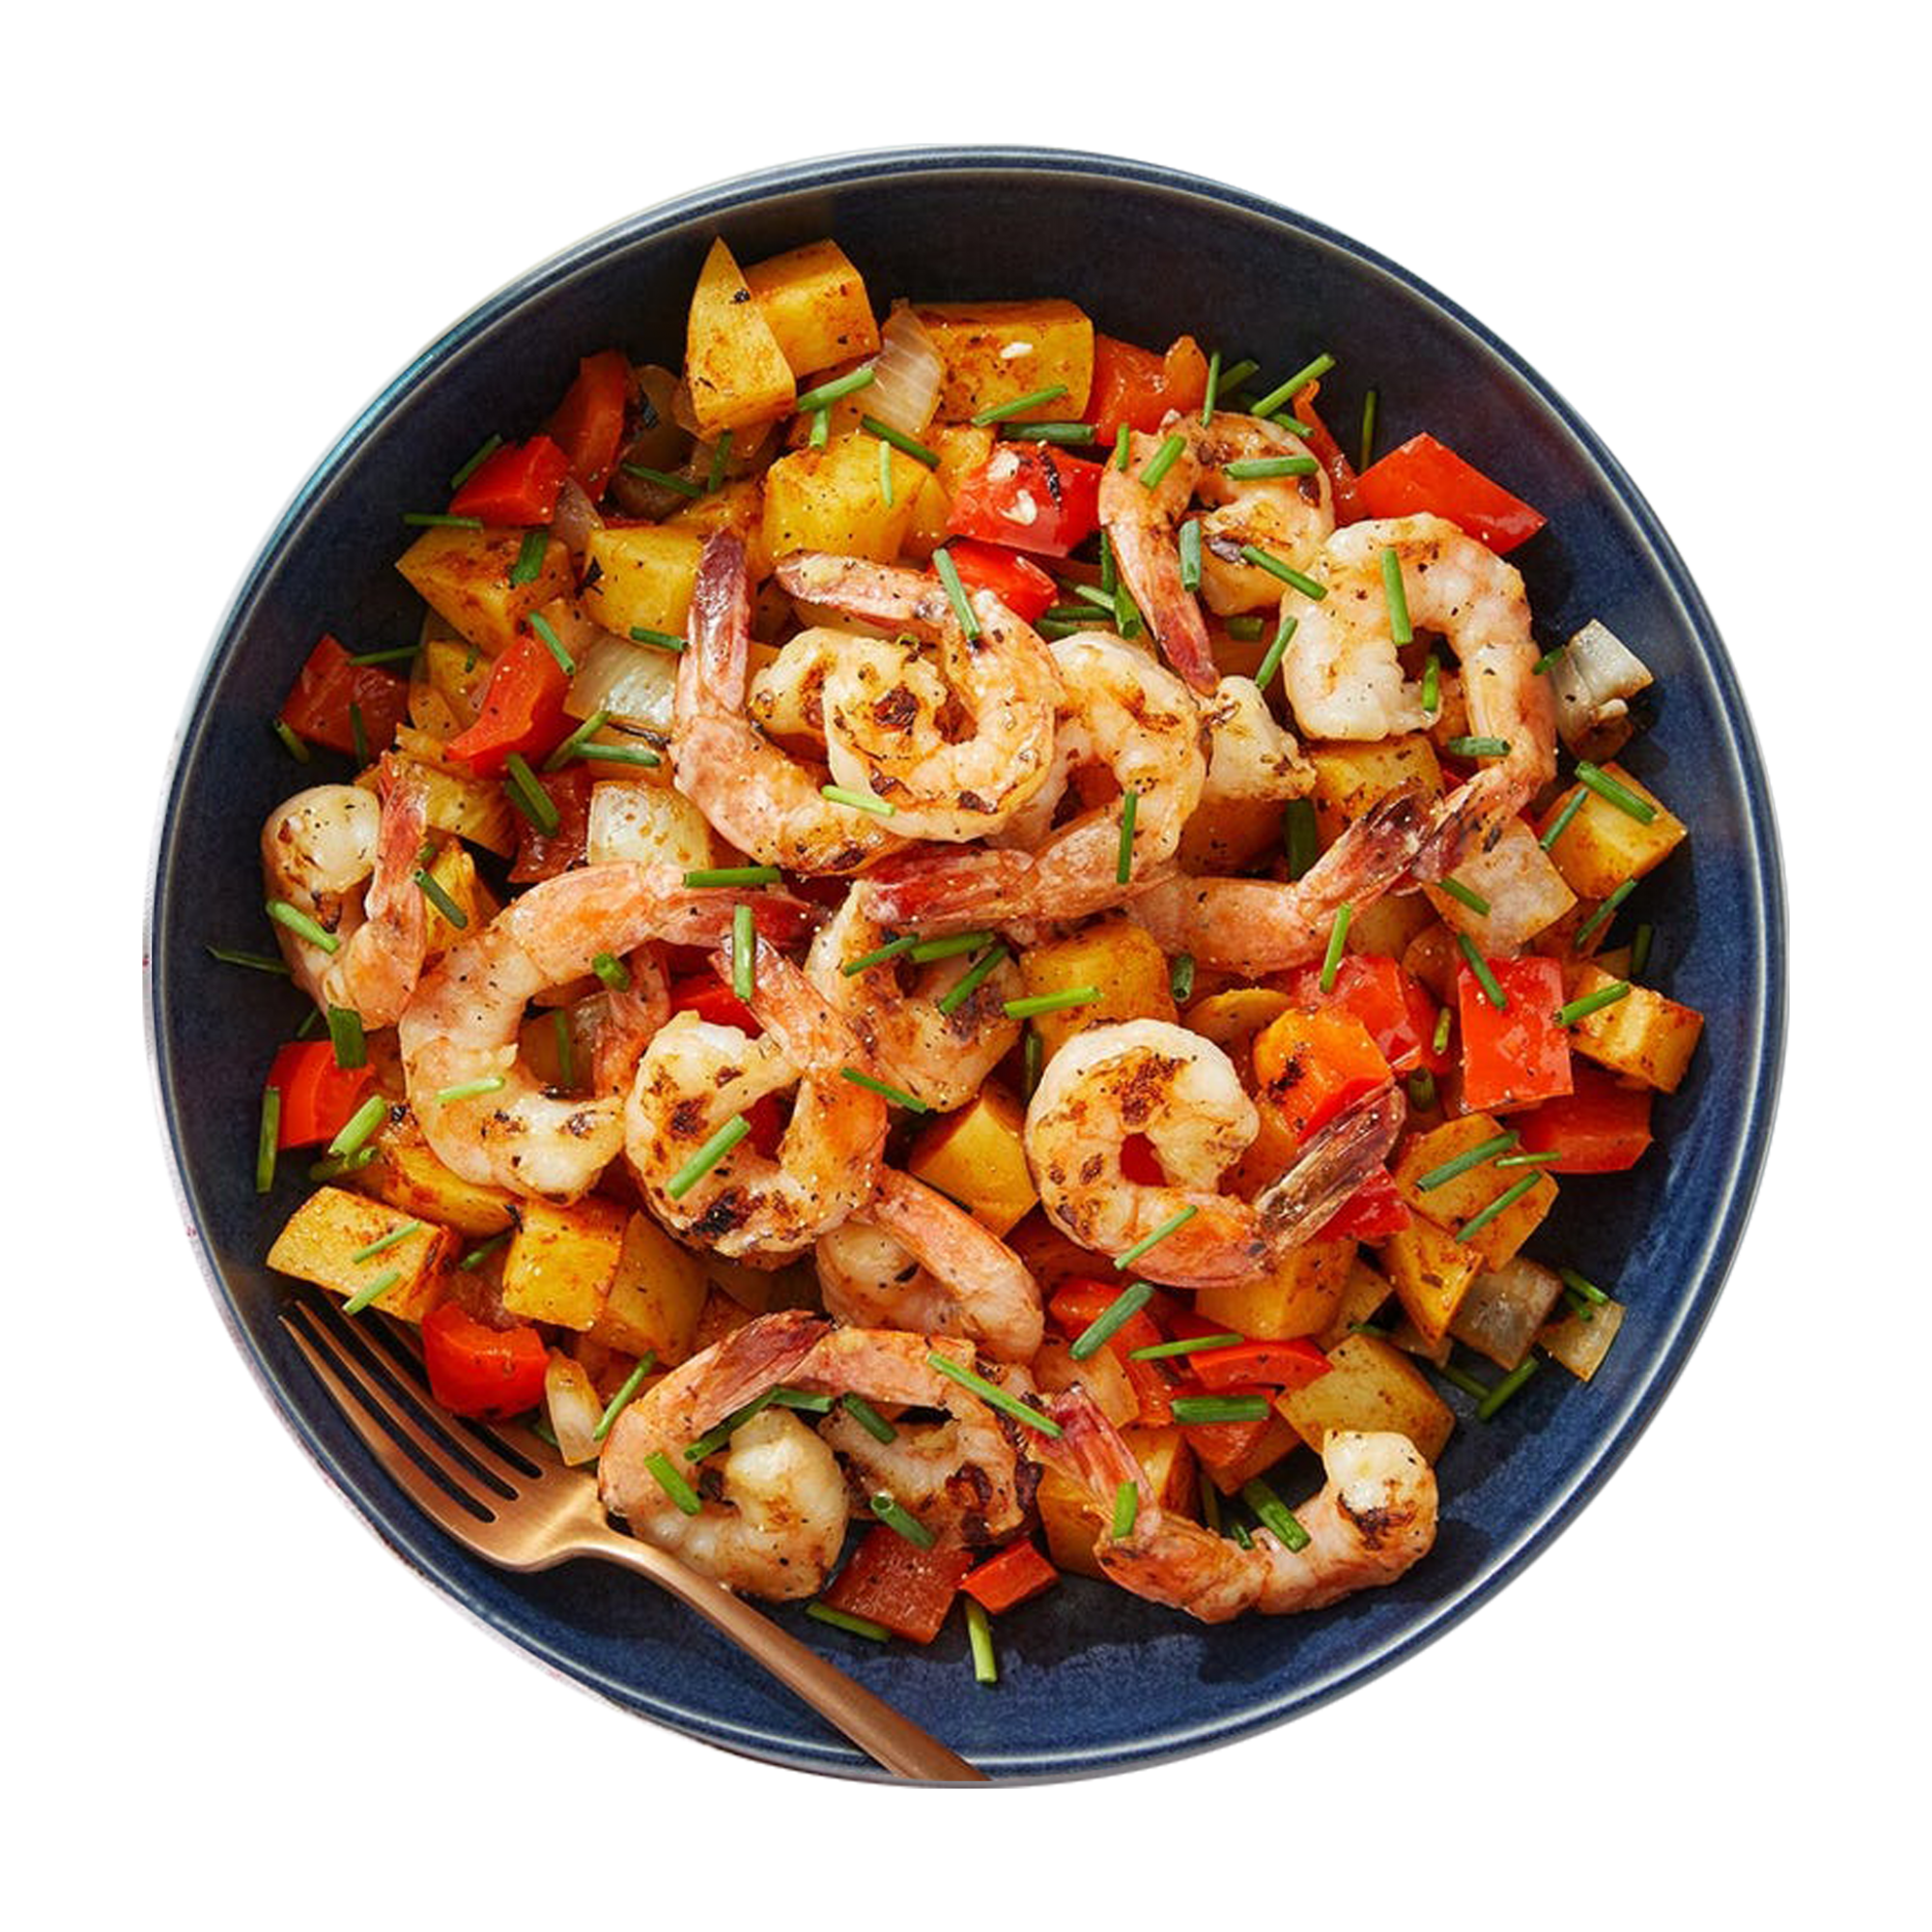 Grilled Garlic Shrimp & Spanish-Style Spaghetti with Onion & Bell Pepper